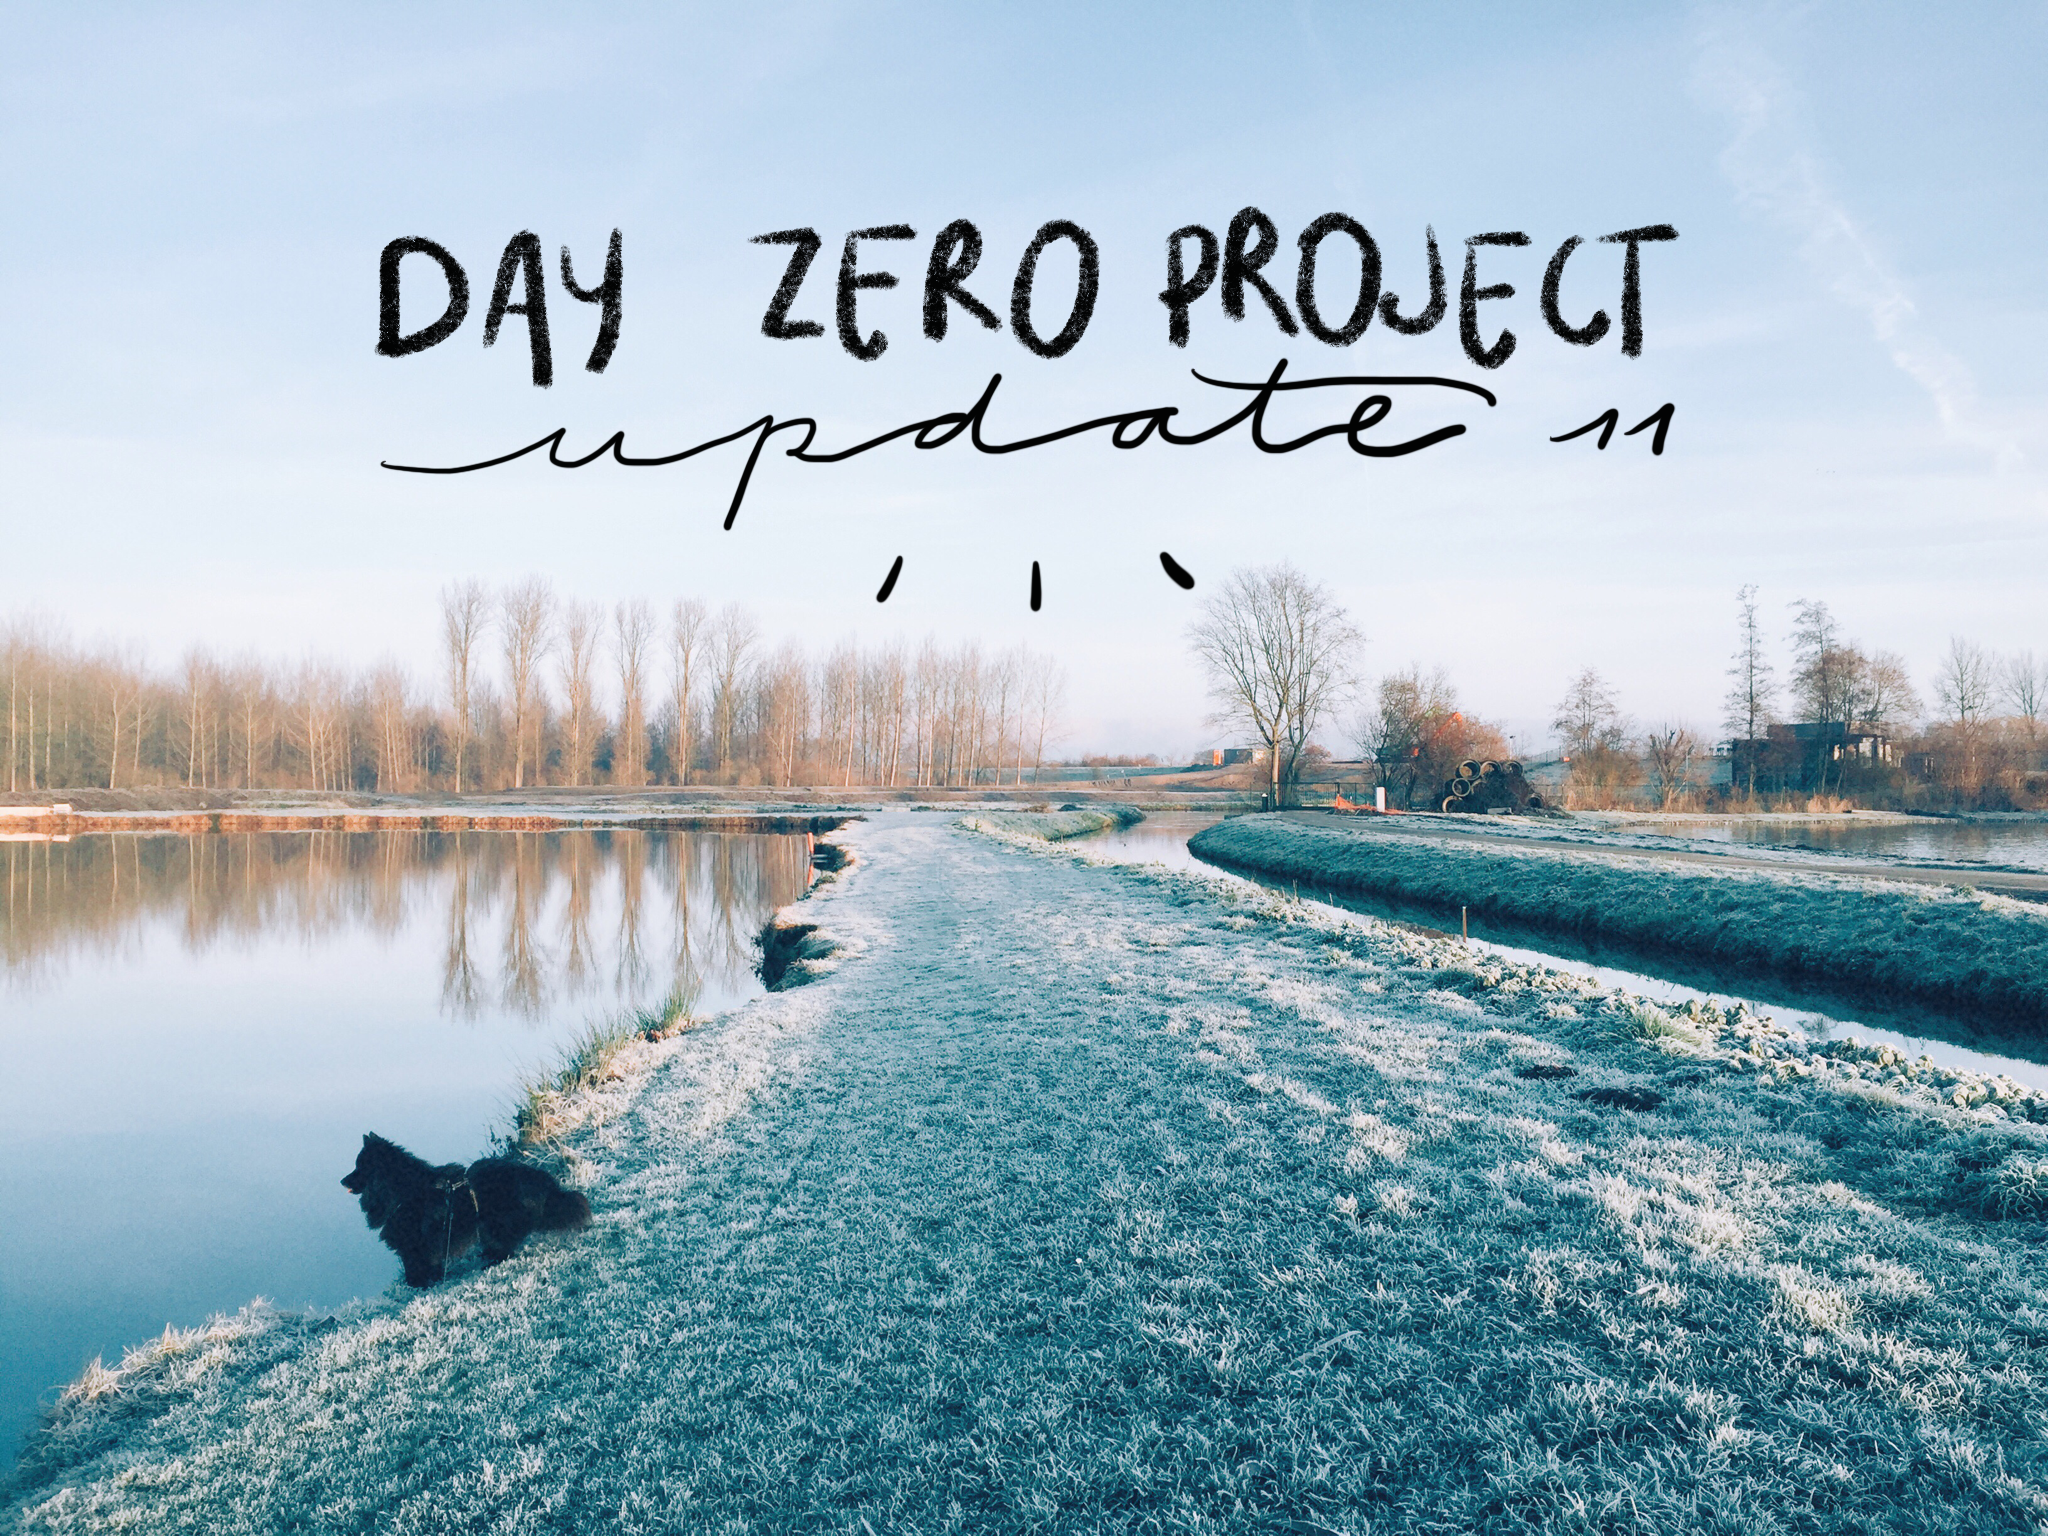 Day zero project | Update 11